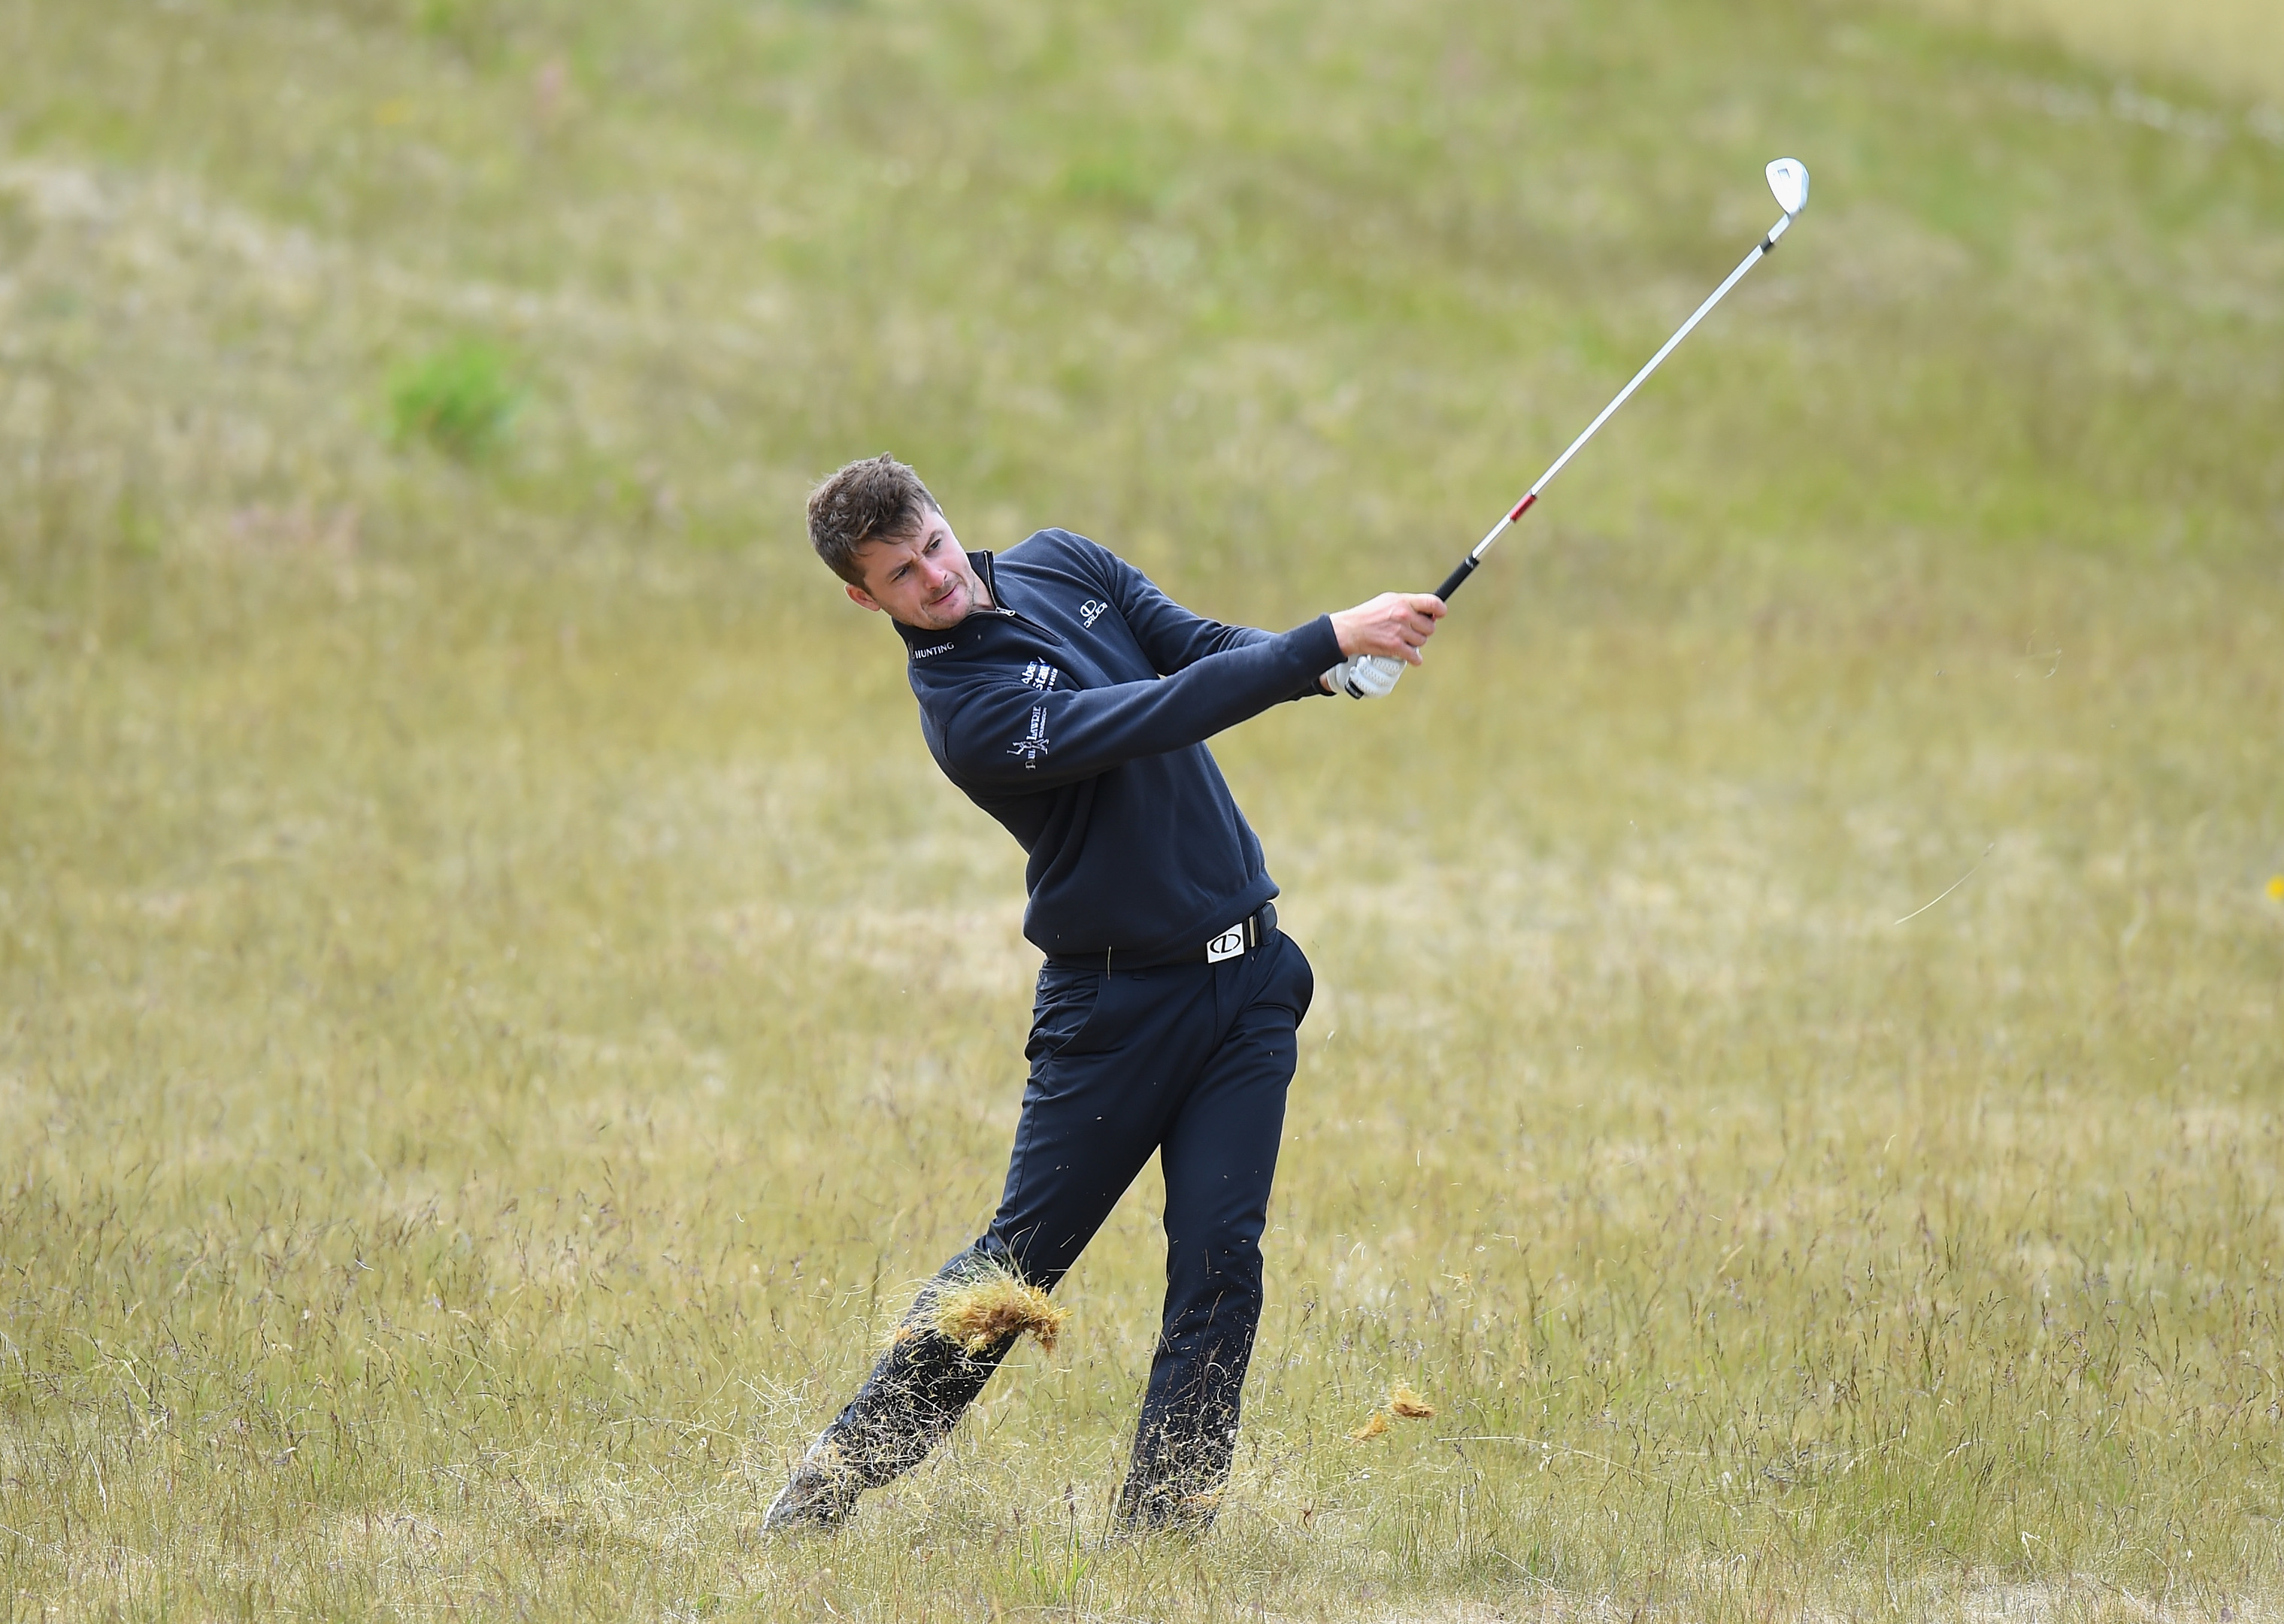 David Law plays his second shot out of the rough on the 3rd fairway during Day Two of the SSE Scottish Hydro Challenge hosted by Macdonald Hotels and Resorts at Macdonald Spey Valley Golf Course.